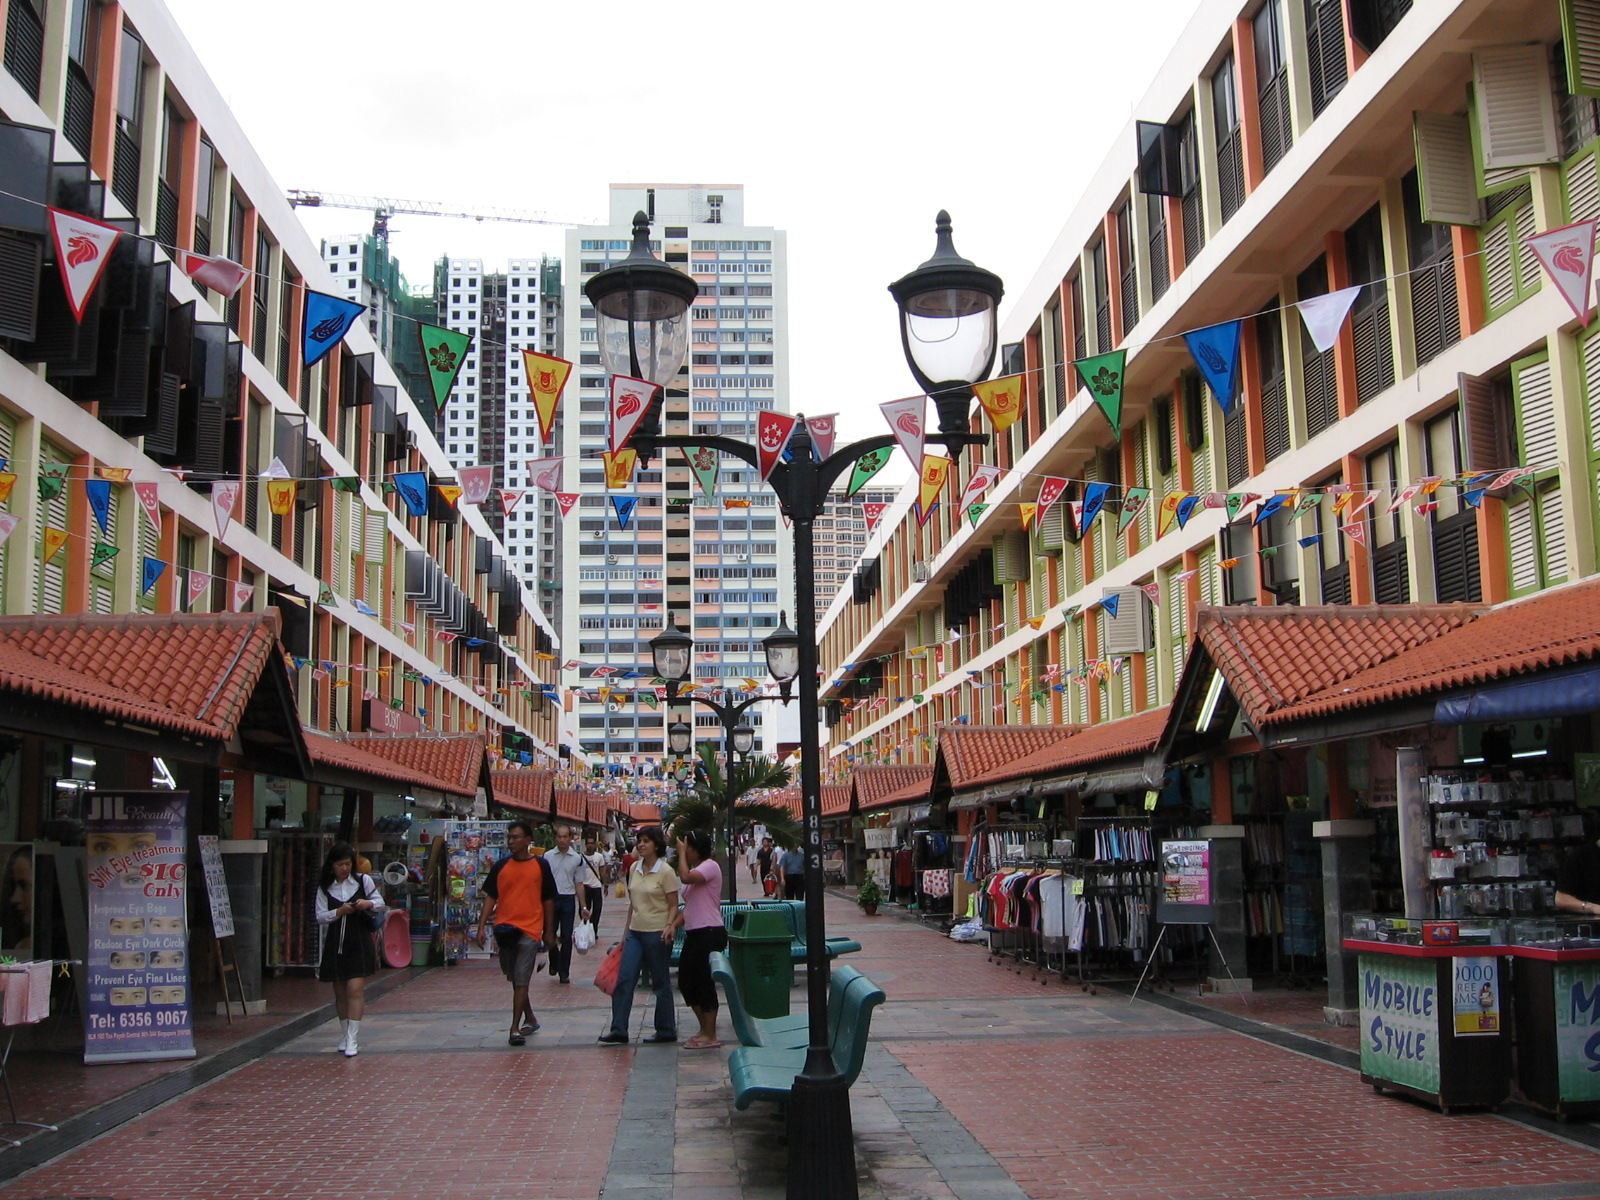 File:Toa Payoh Town Centre 4, Aug 06.JPG - Wikipedia, the free ...